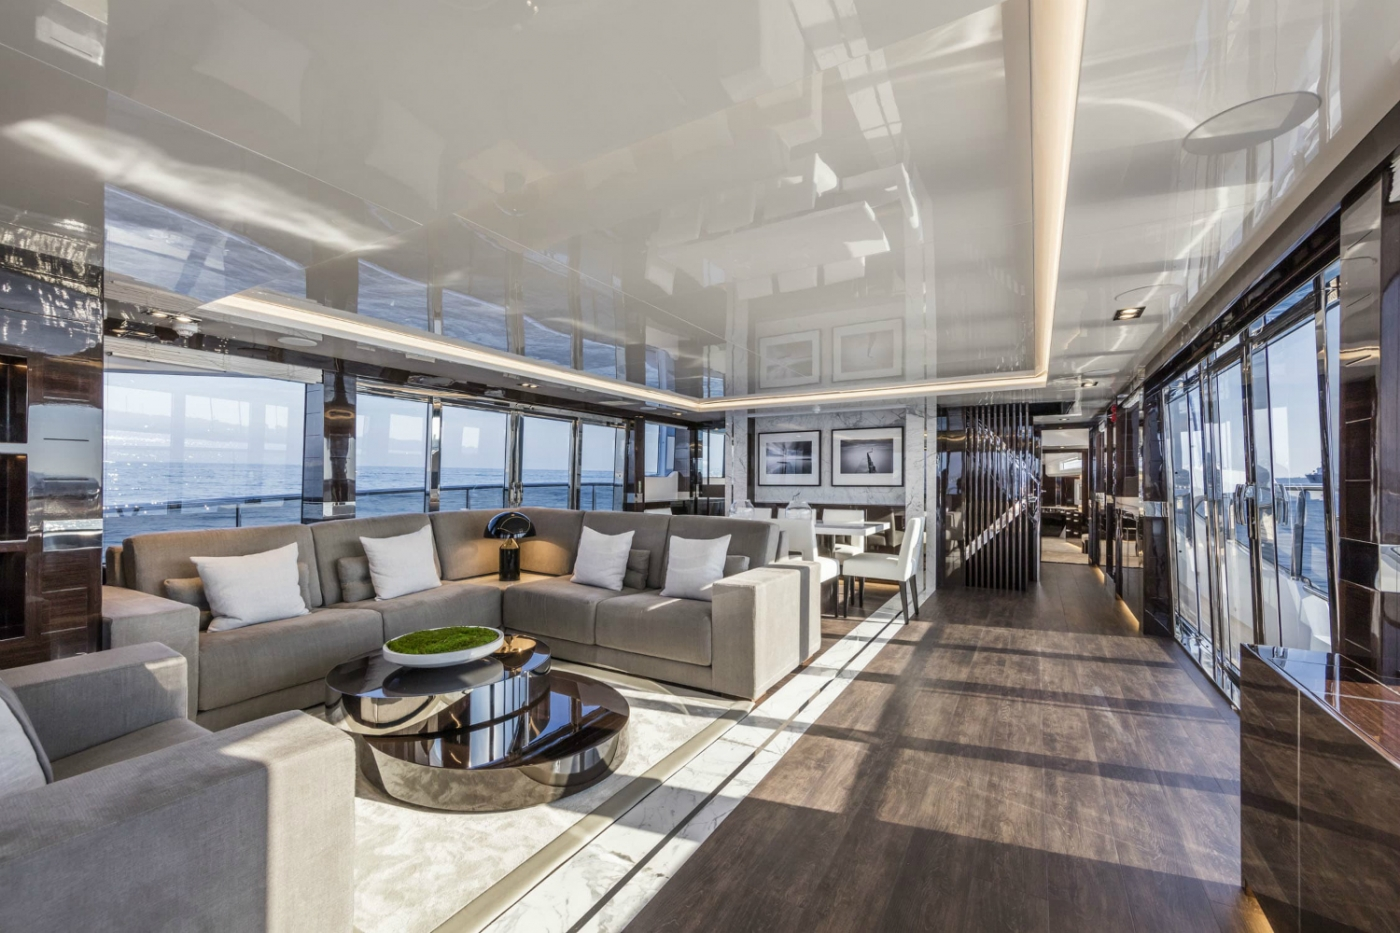 kelly hoppen Inside Pearl 65 Superyacht: A Supreme Interior Design by Kelly Hoppen featured 3 1400x933